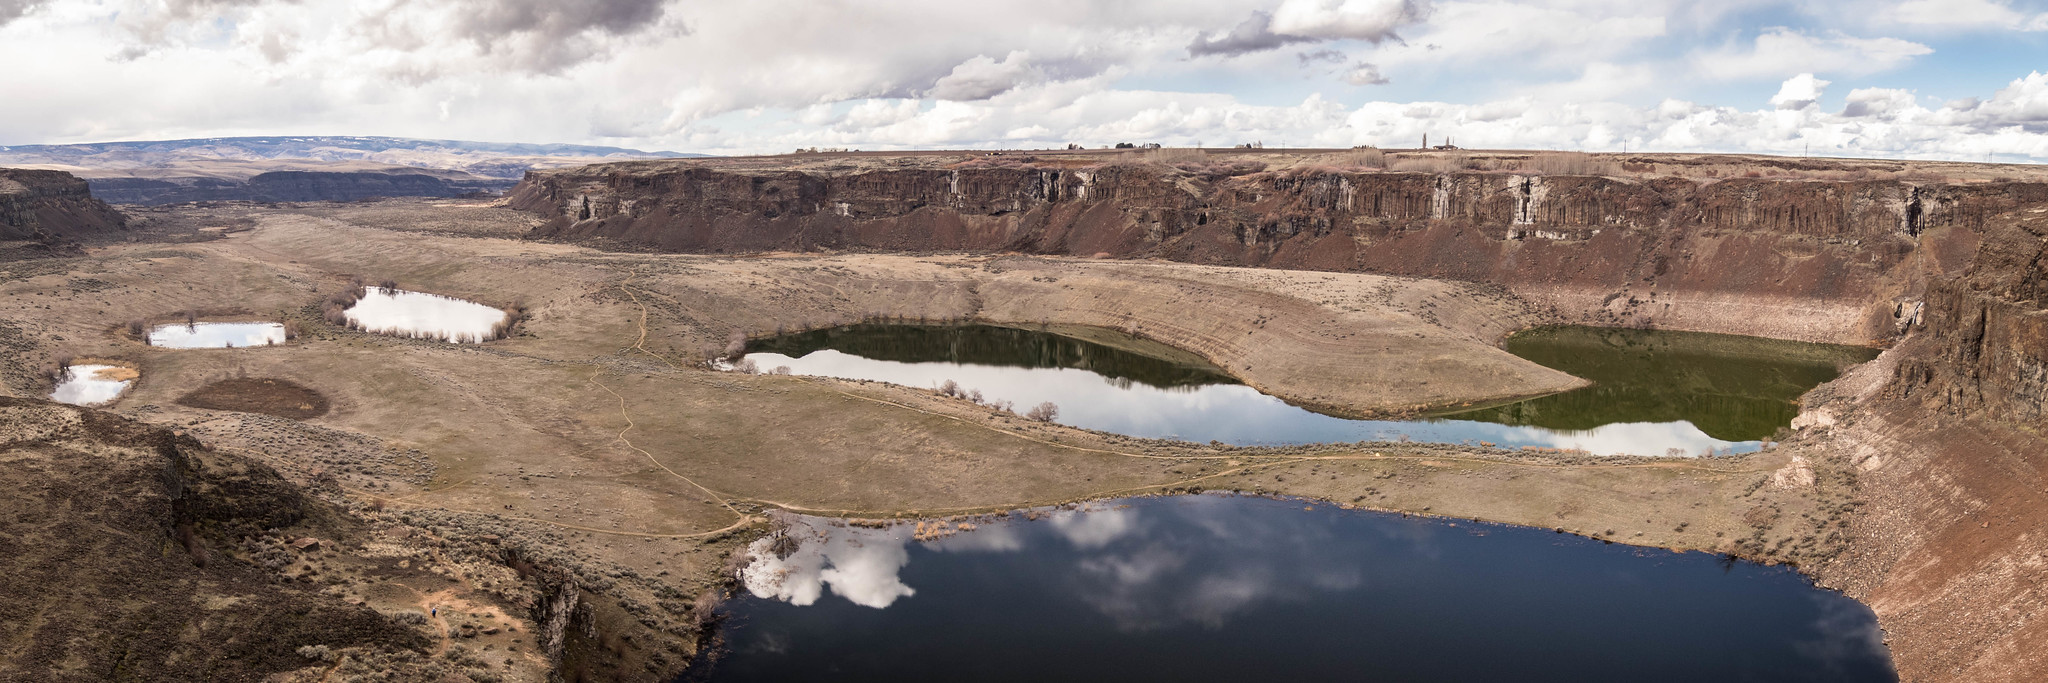 Potholes Coulee panoramic view